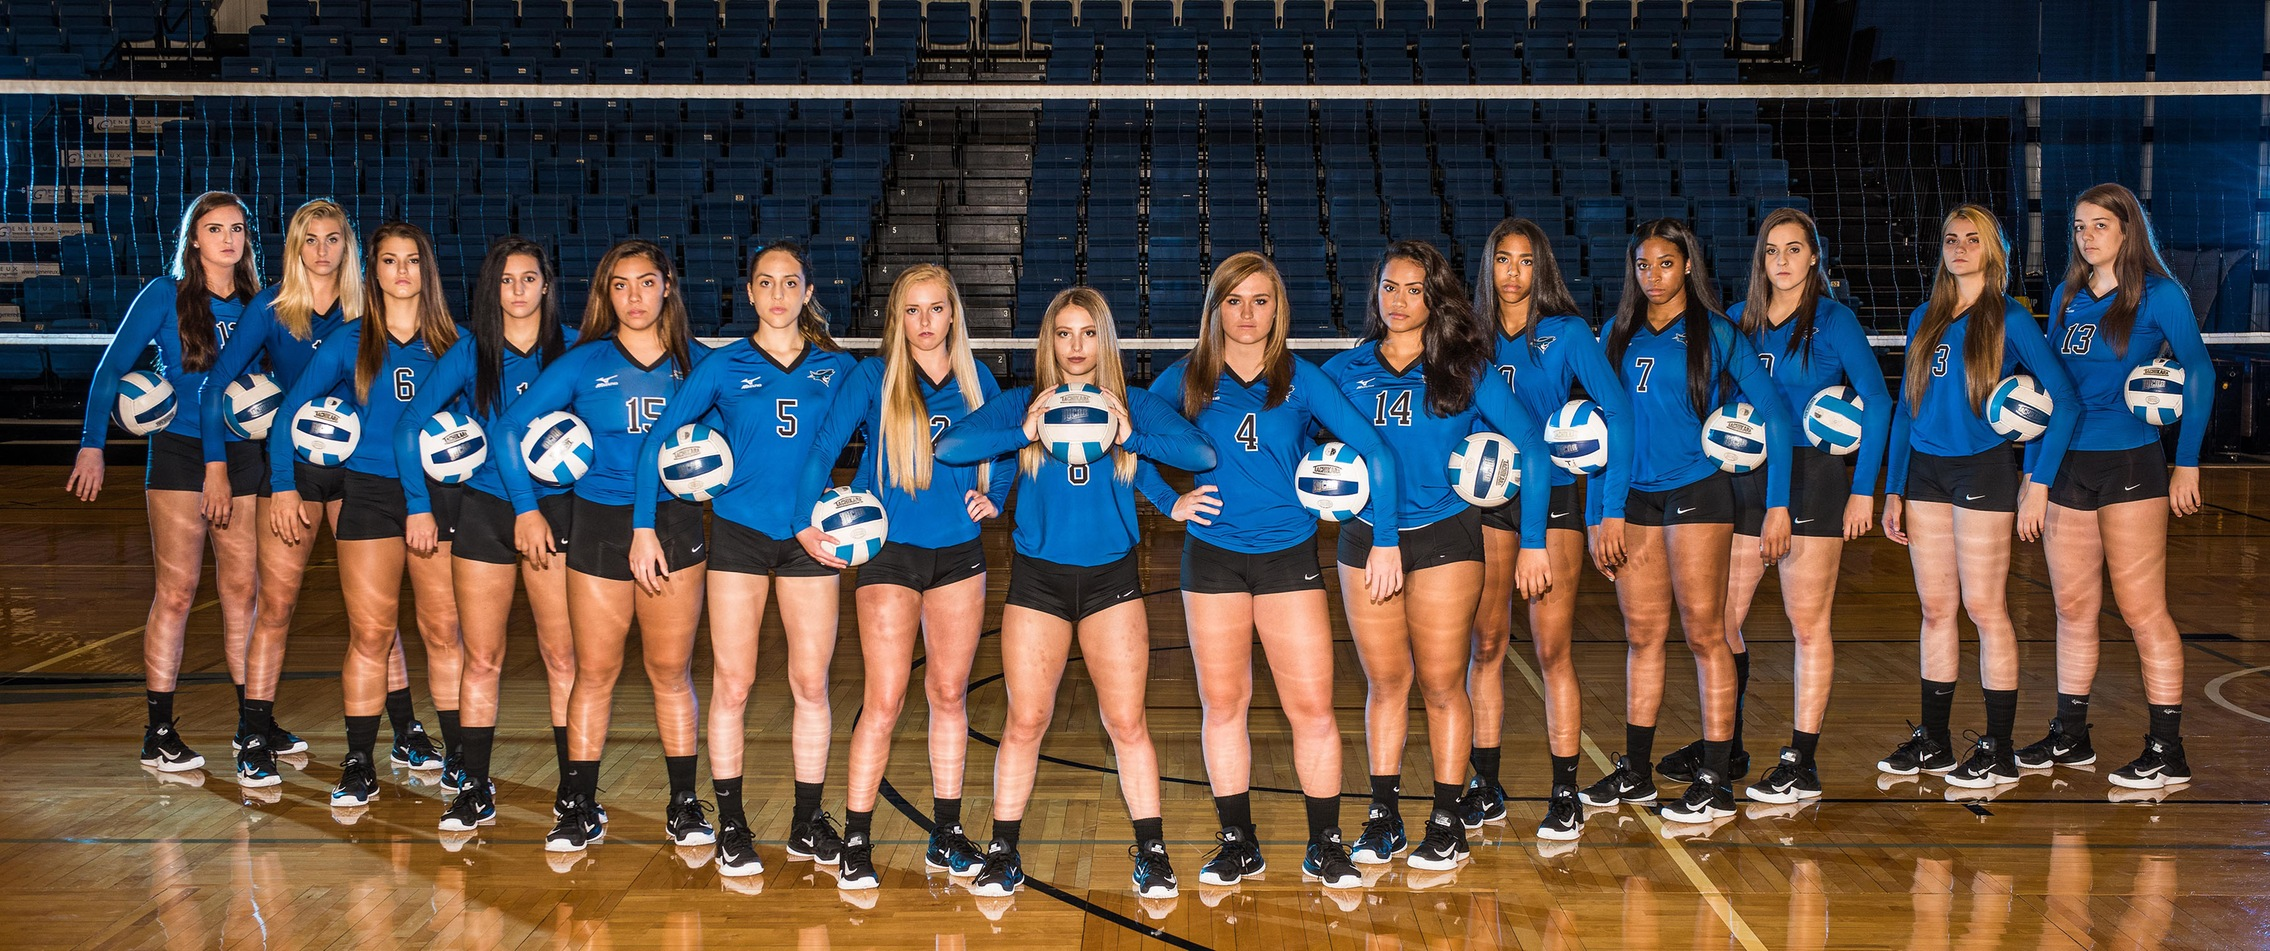 Reiver Volleyball stands out in the classroom